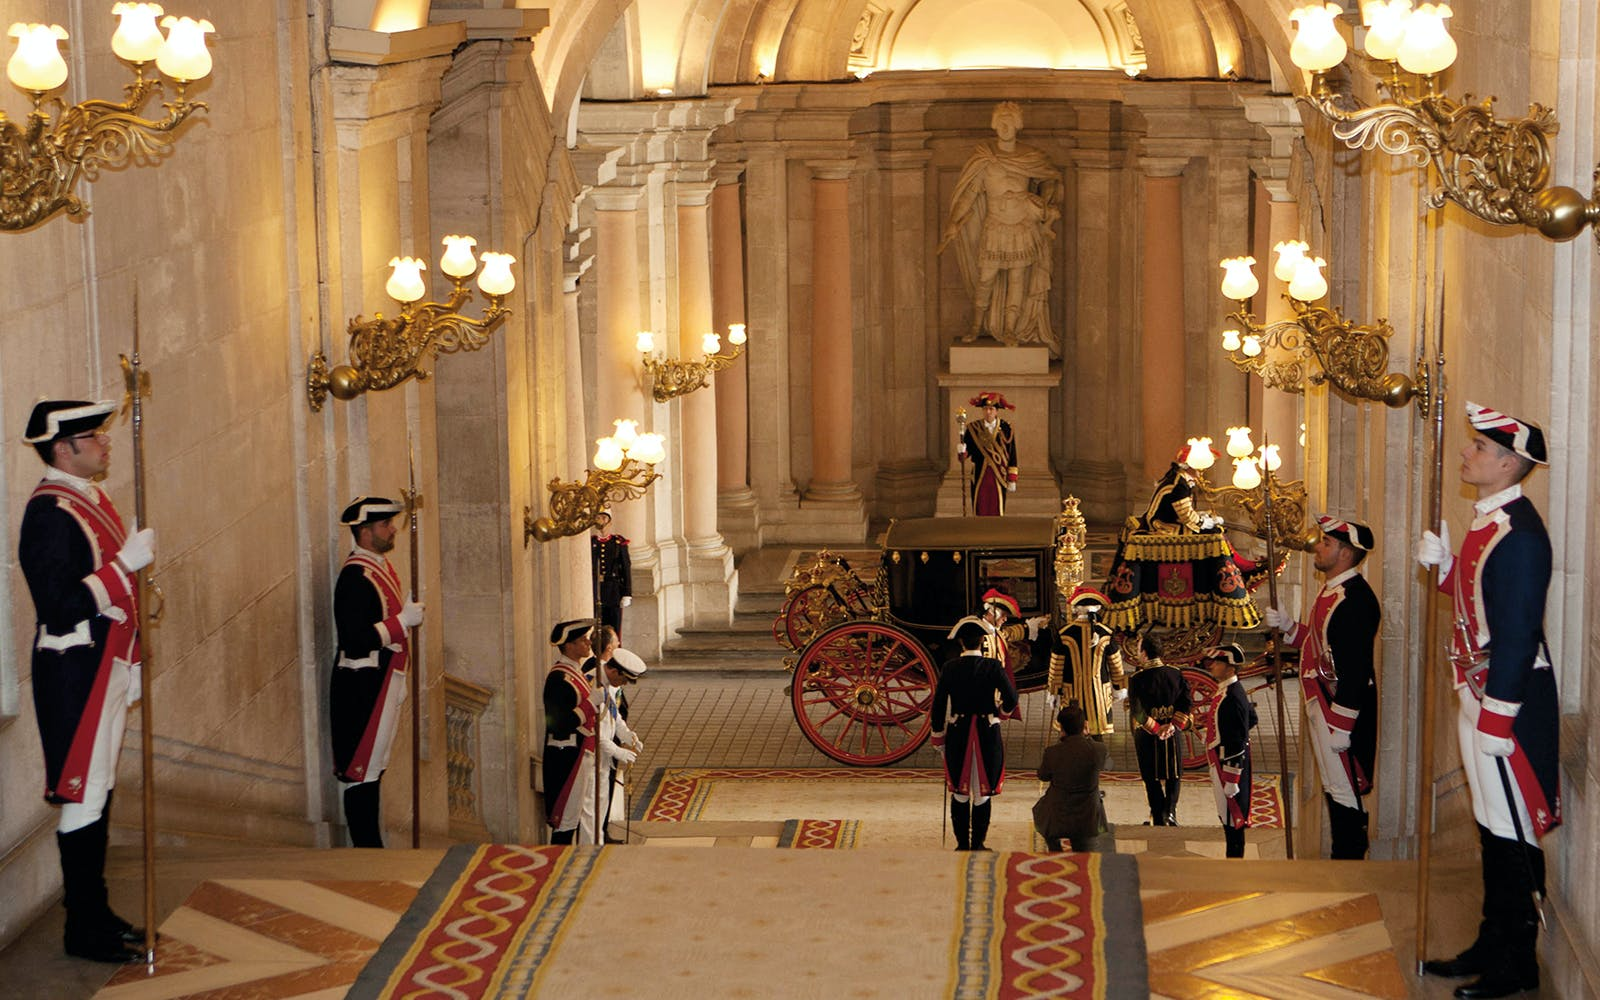 skip the line guided tour tickets to the royal palace of madrid and prado museum-3